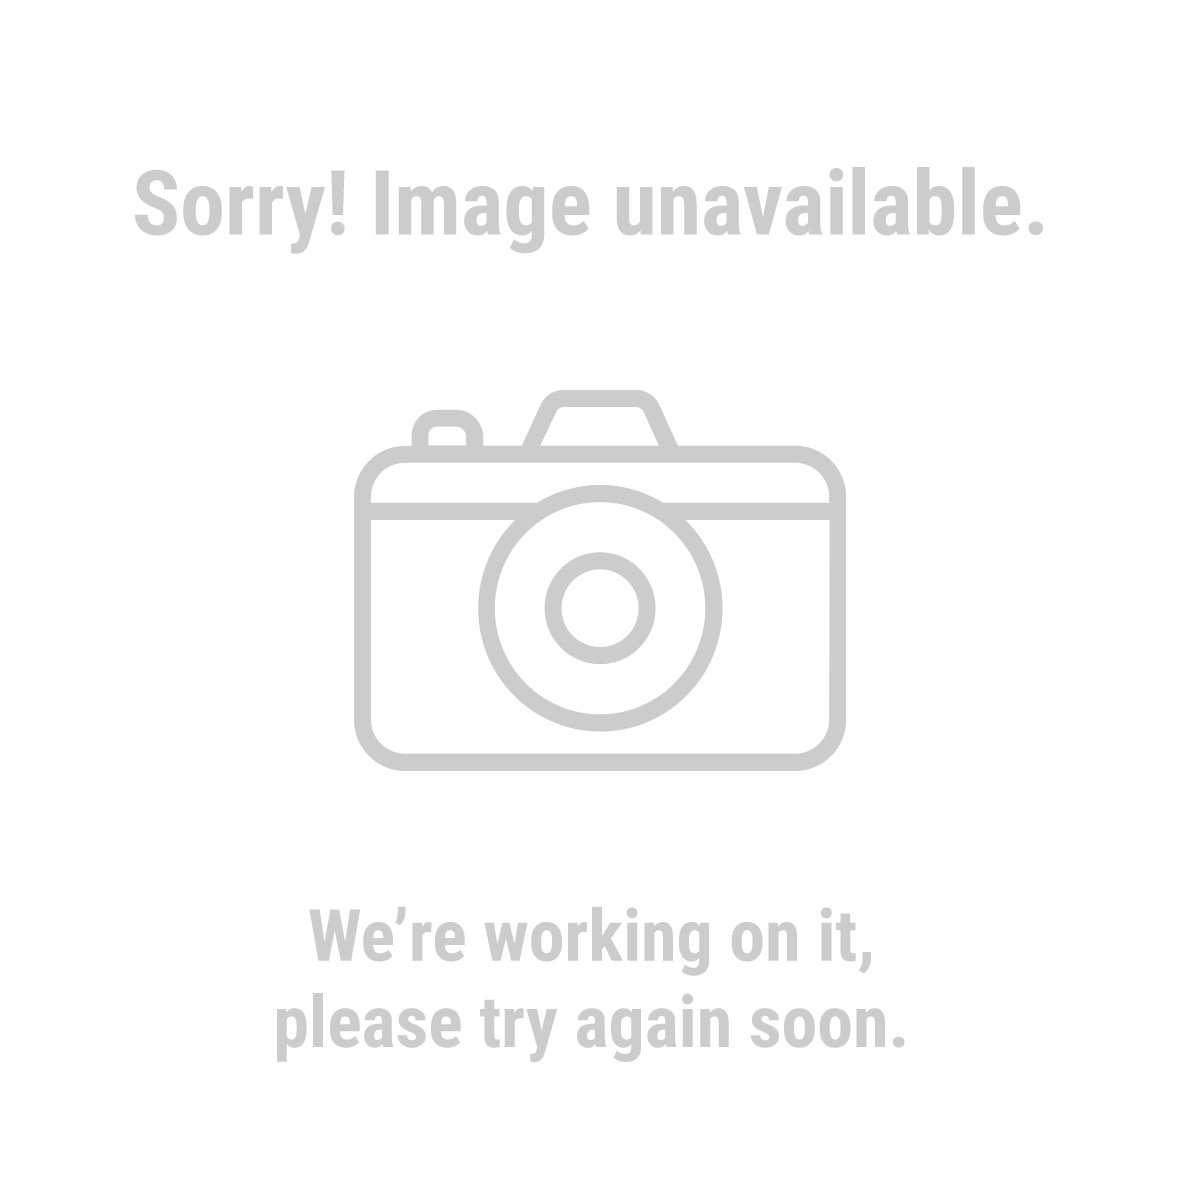 Gordon 93102 Rubber Grip Flashlight